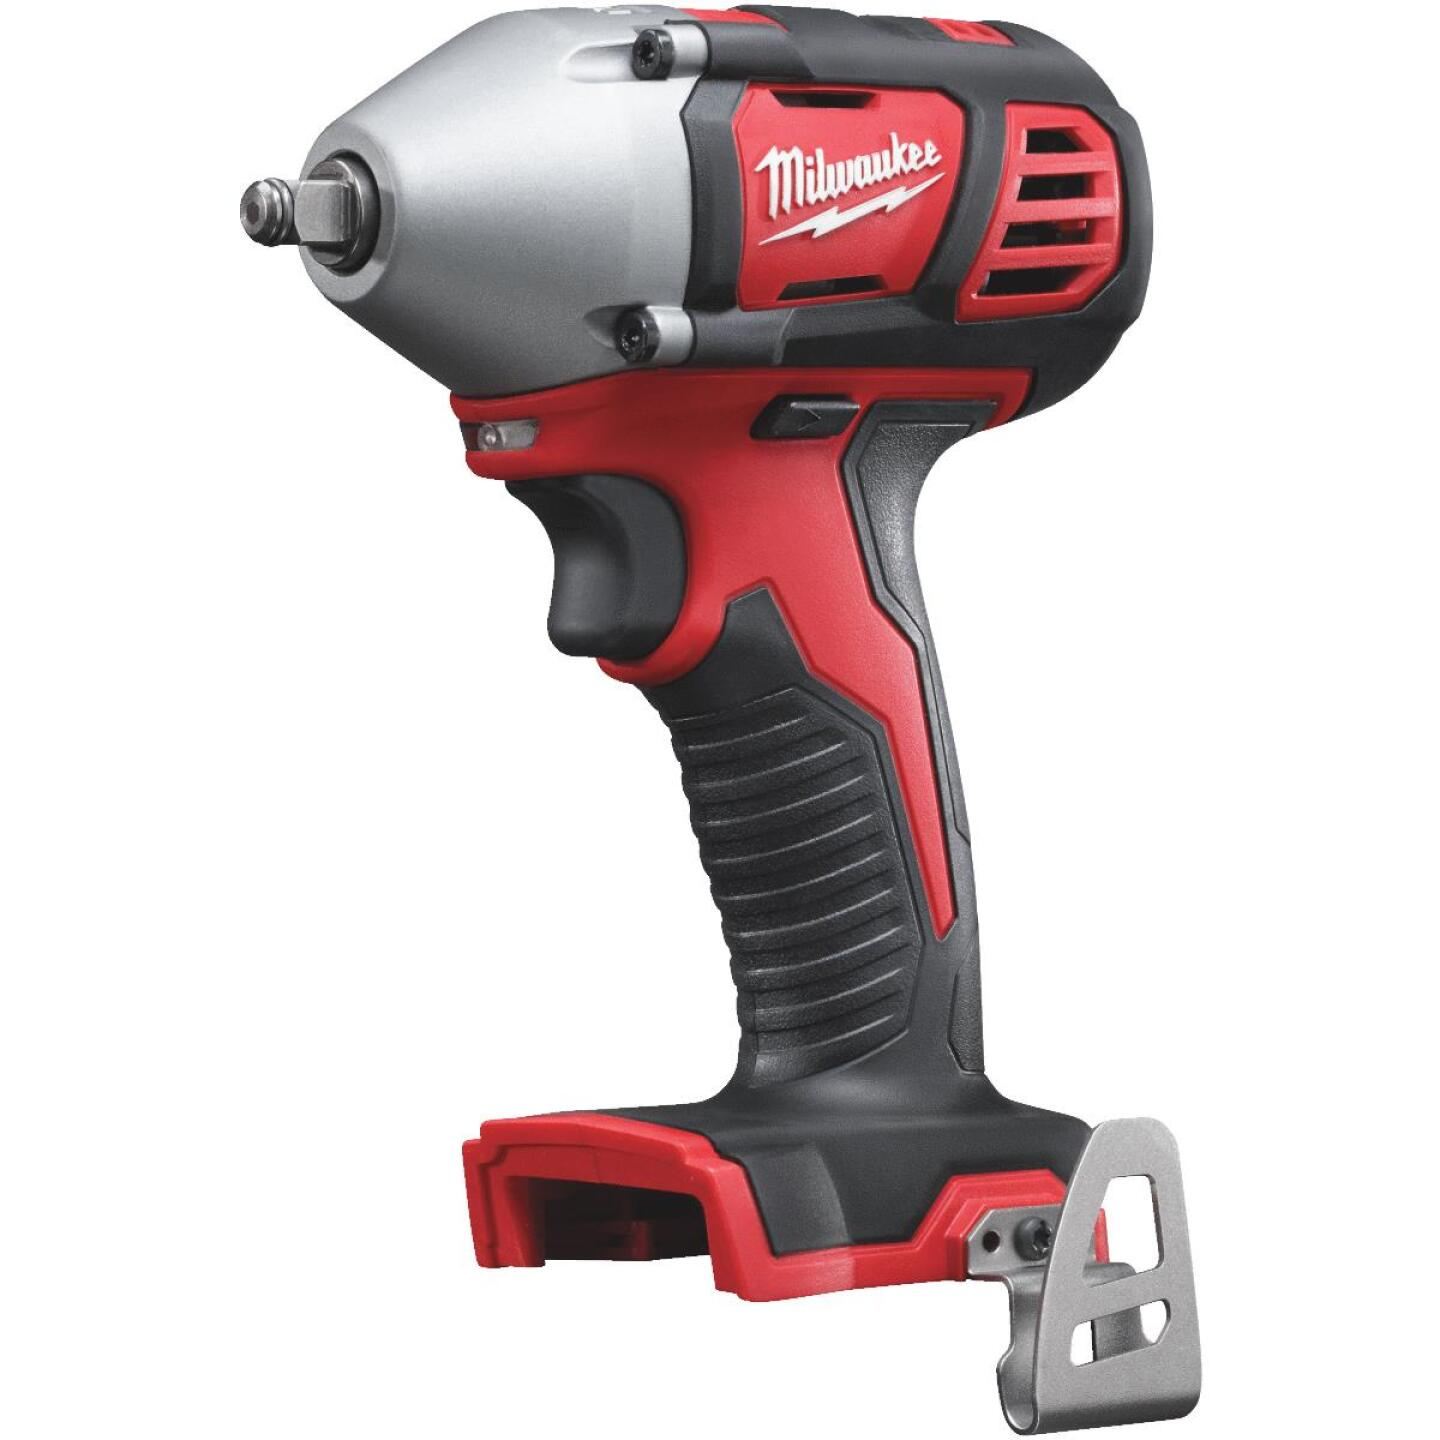 Milwaukee M18 18 Volt Lithium-Ion 3/8 In. Cordless Impact Wrench with Friction Ring (Bare Tool) Image 1